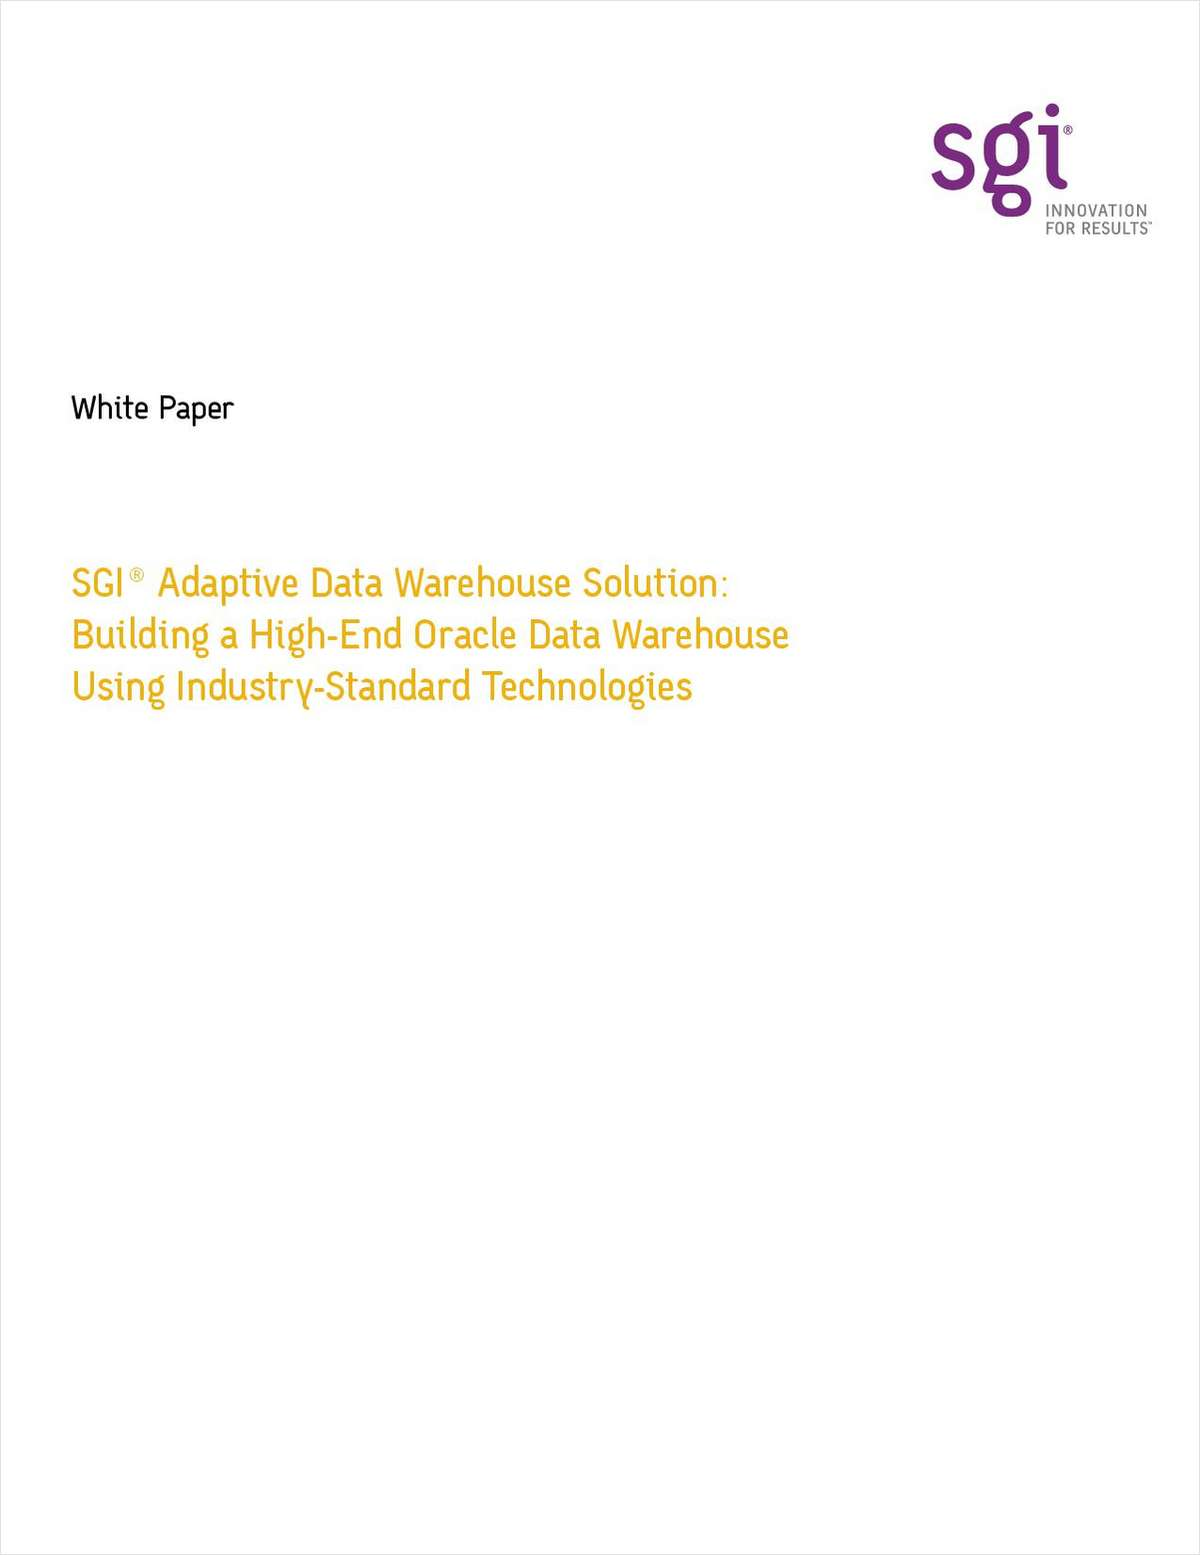 SGI® Adaptive Data Warehouse: Building a High-End Oracle Data Warehouse Using Industry-Standard Technologies